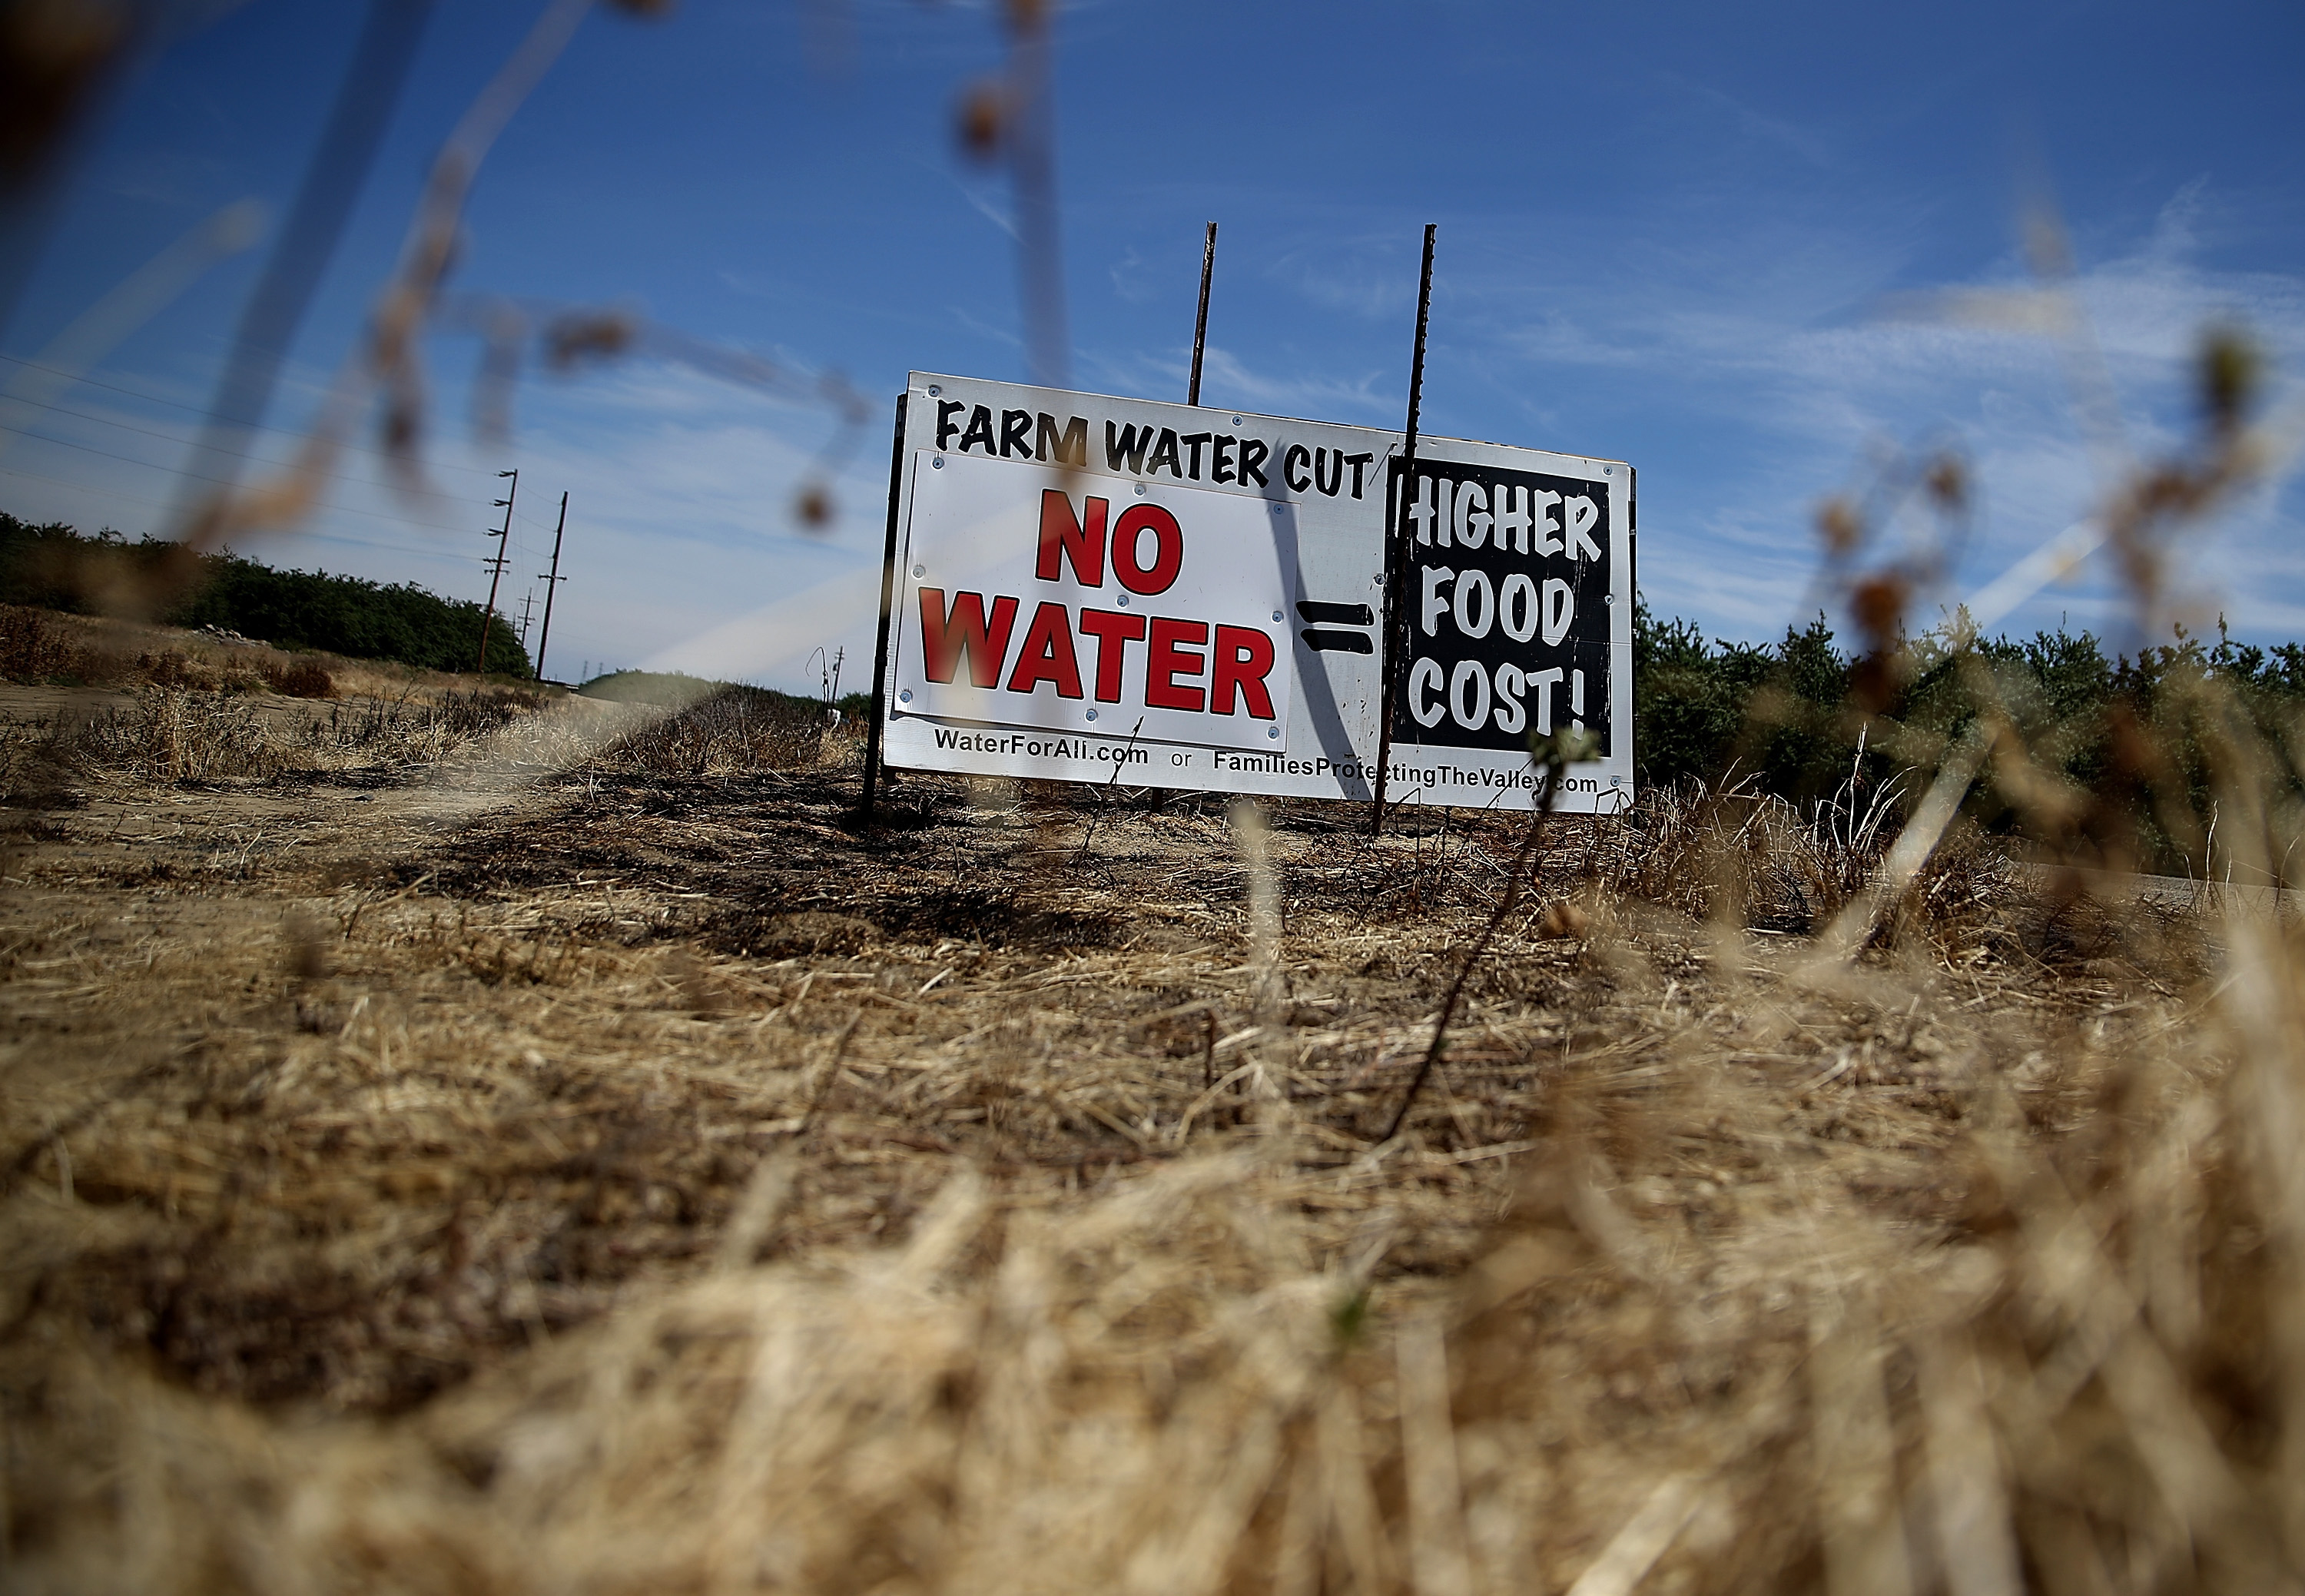 A sign referencing the drought is posted on the side of the road on April 24, 2015 in Firebaugh, California.